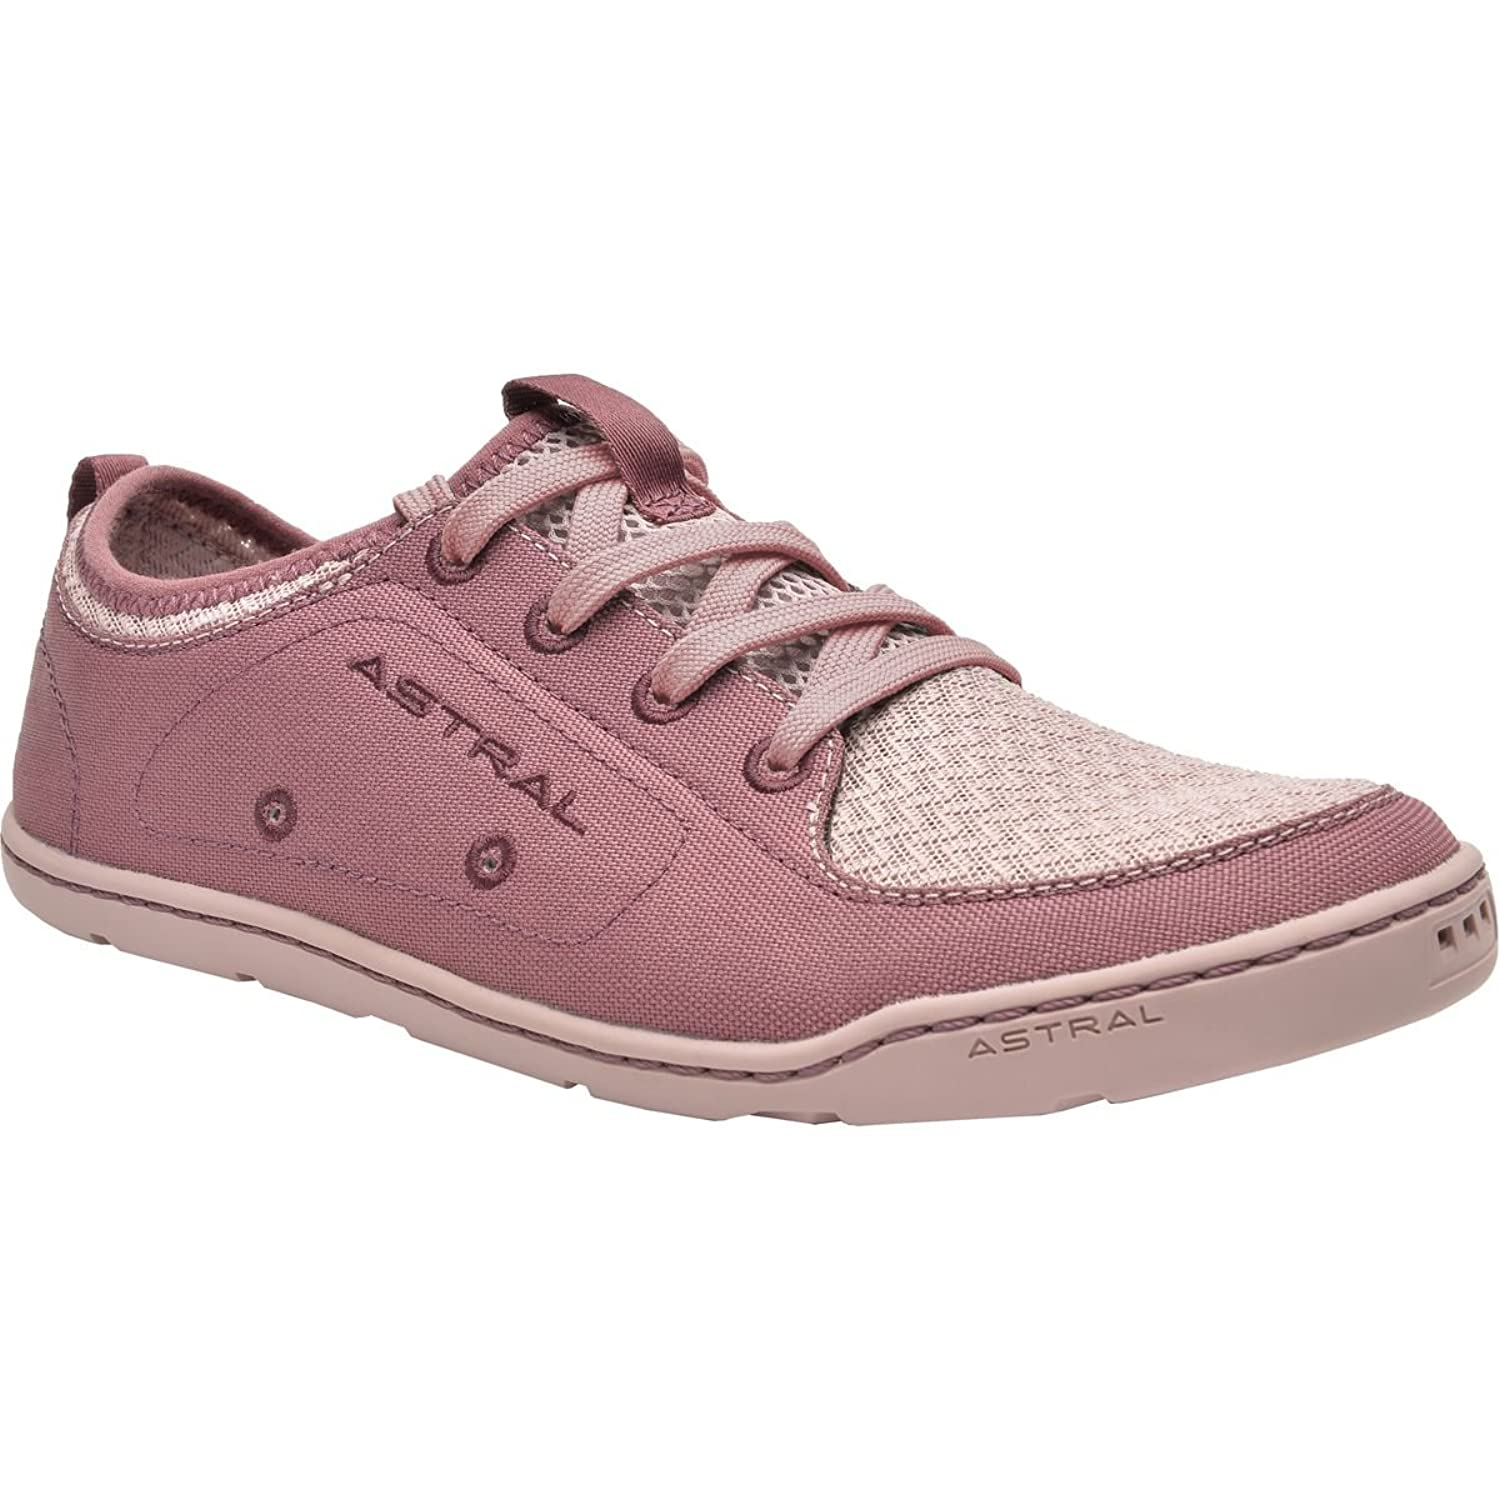 19f073165be7 Astral Loyak Womens Lowprofile Water Shoe  Amazon.co.uk  Shoes   Bags